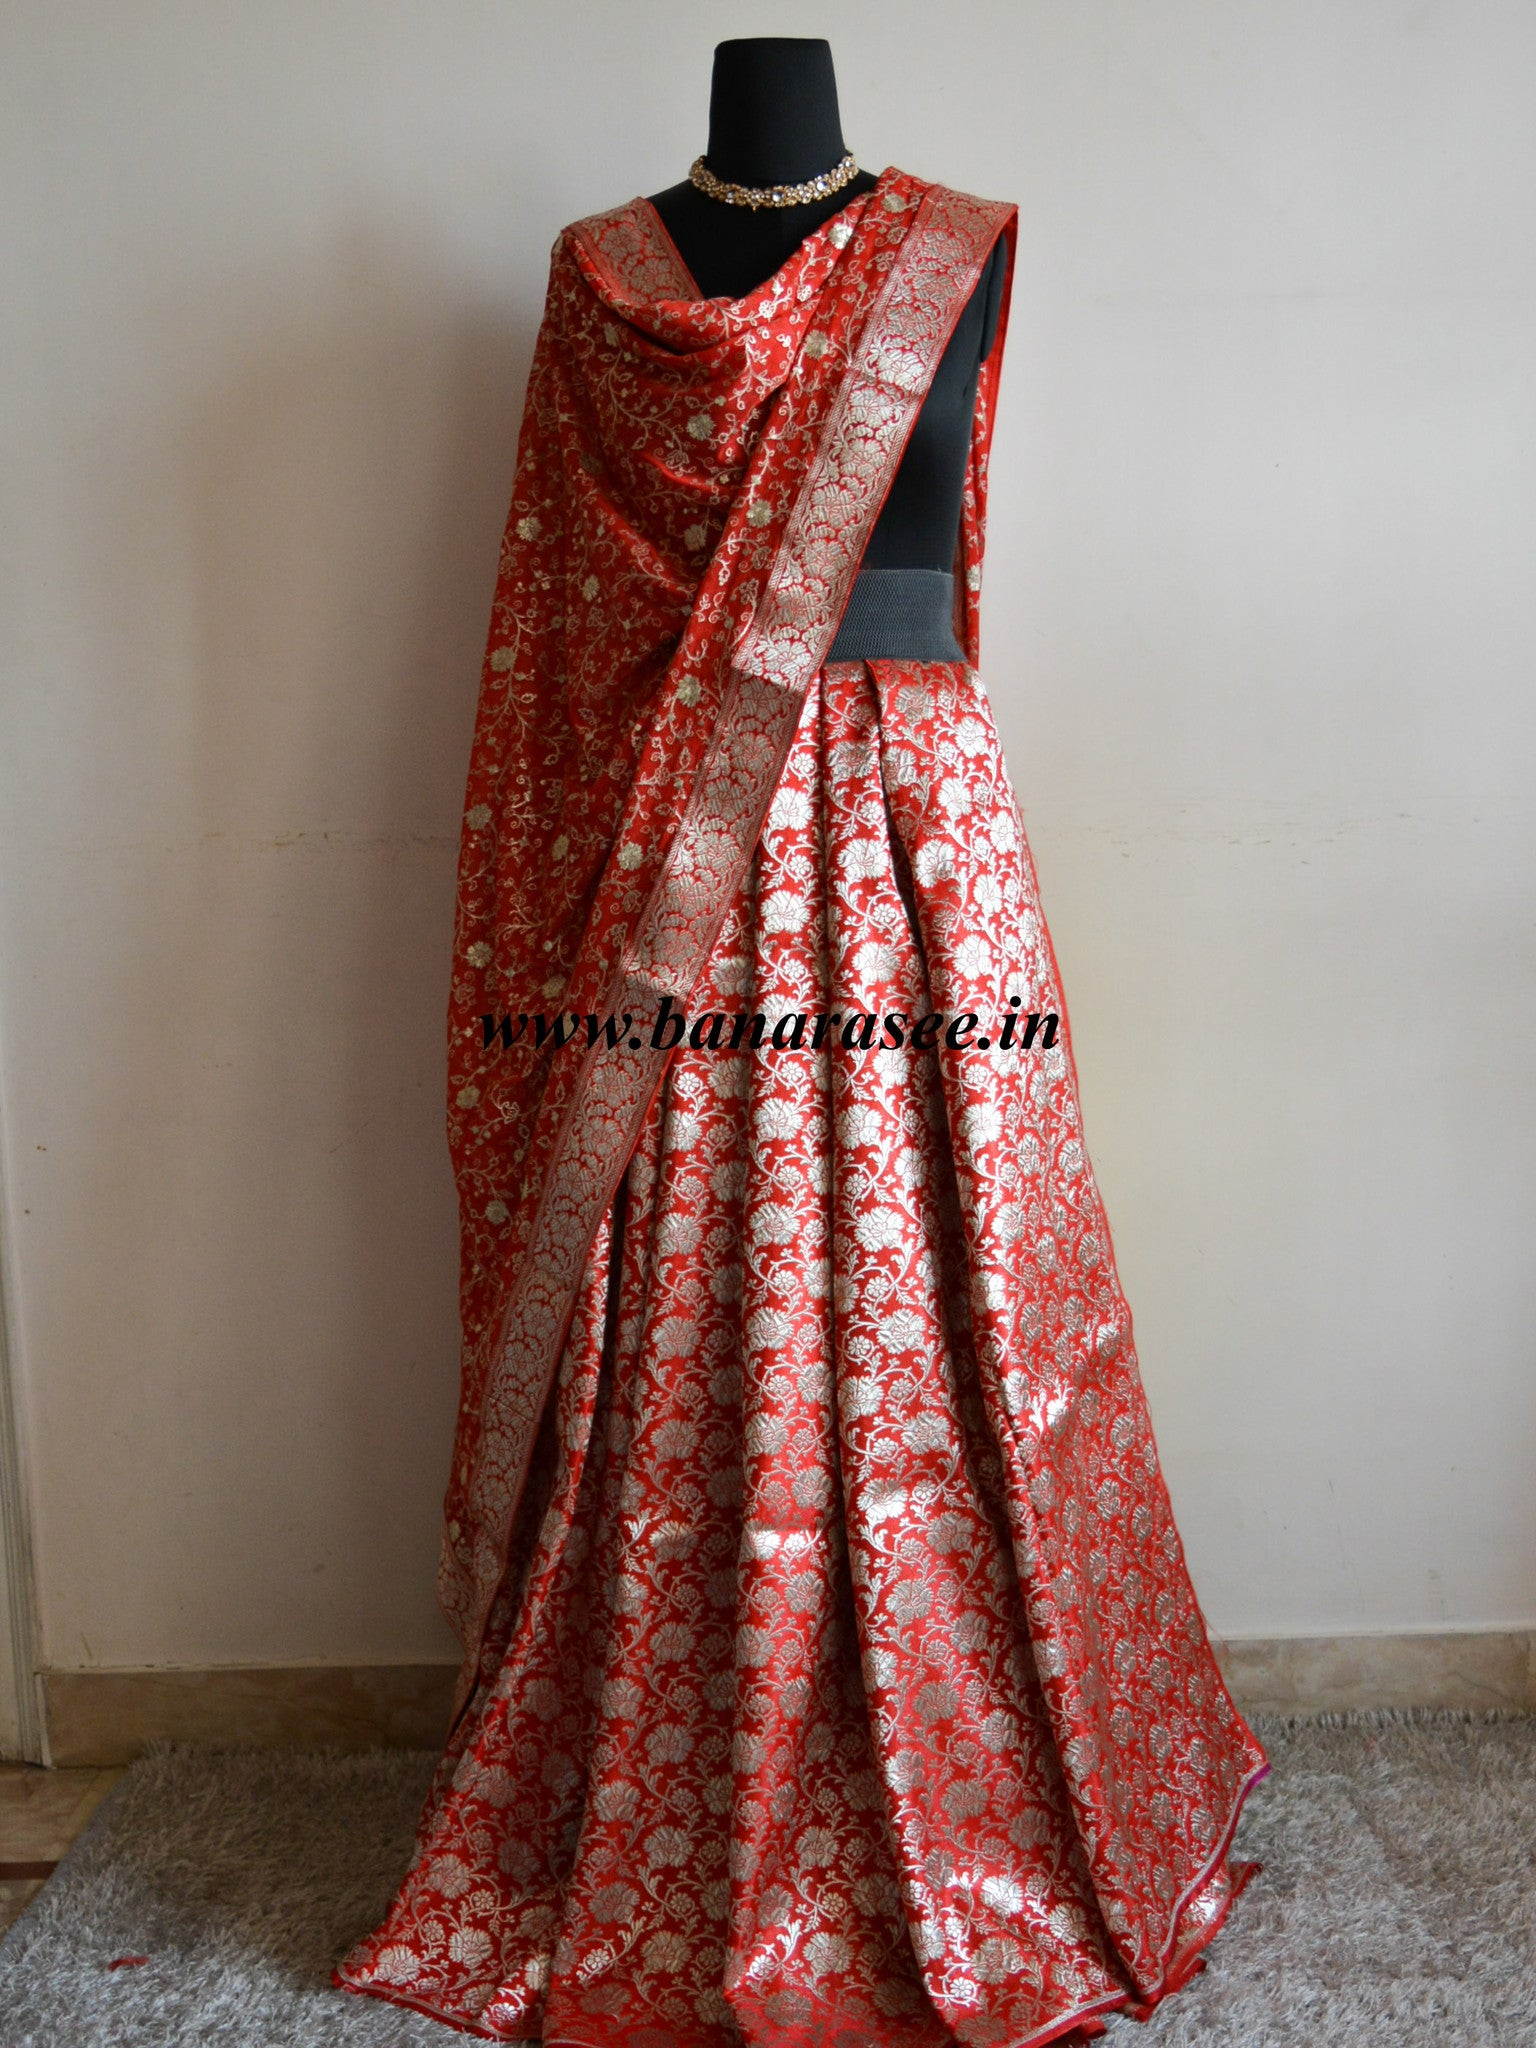 Banarasee/Banarasi Handwoven Brocade Unstitched Lehenga Fabric with Chiffon Dupatta-Red